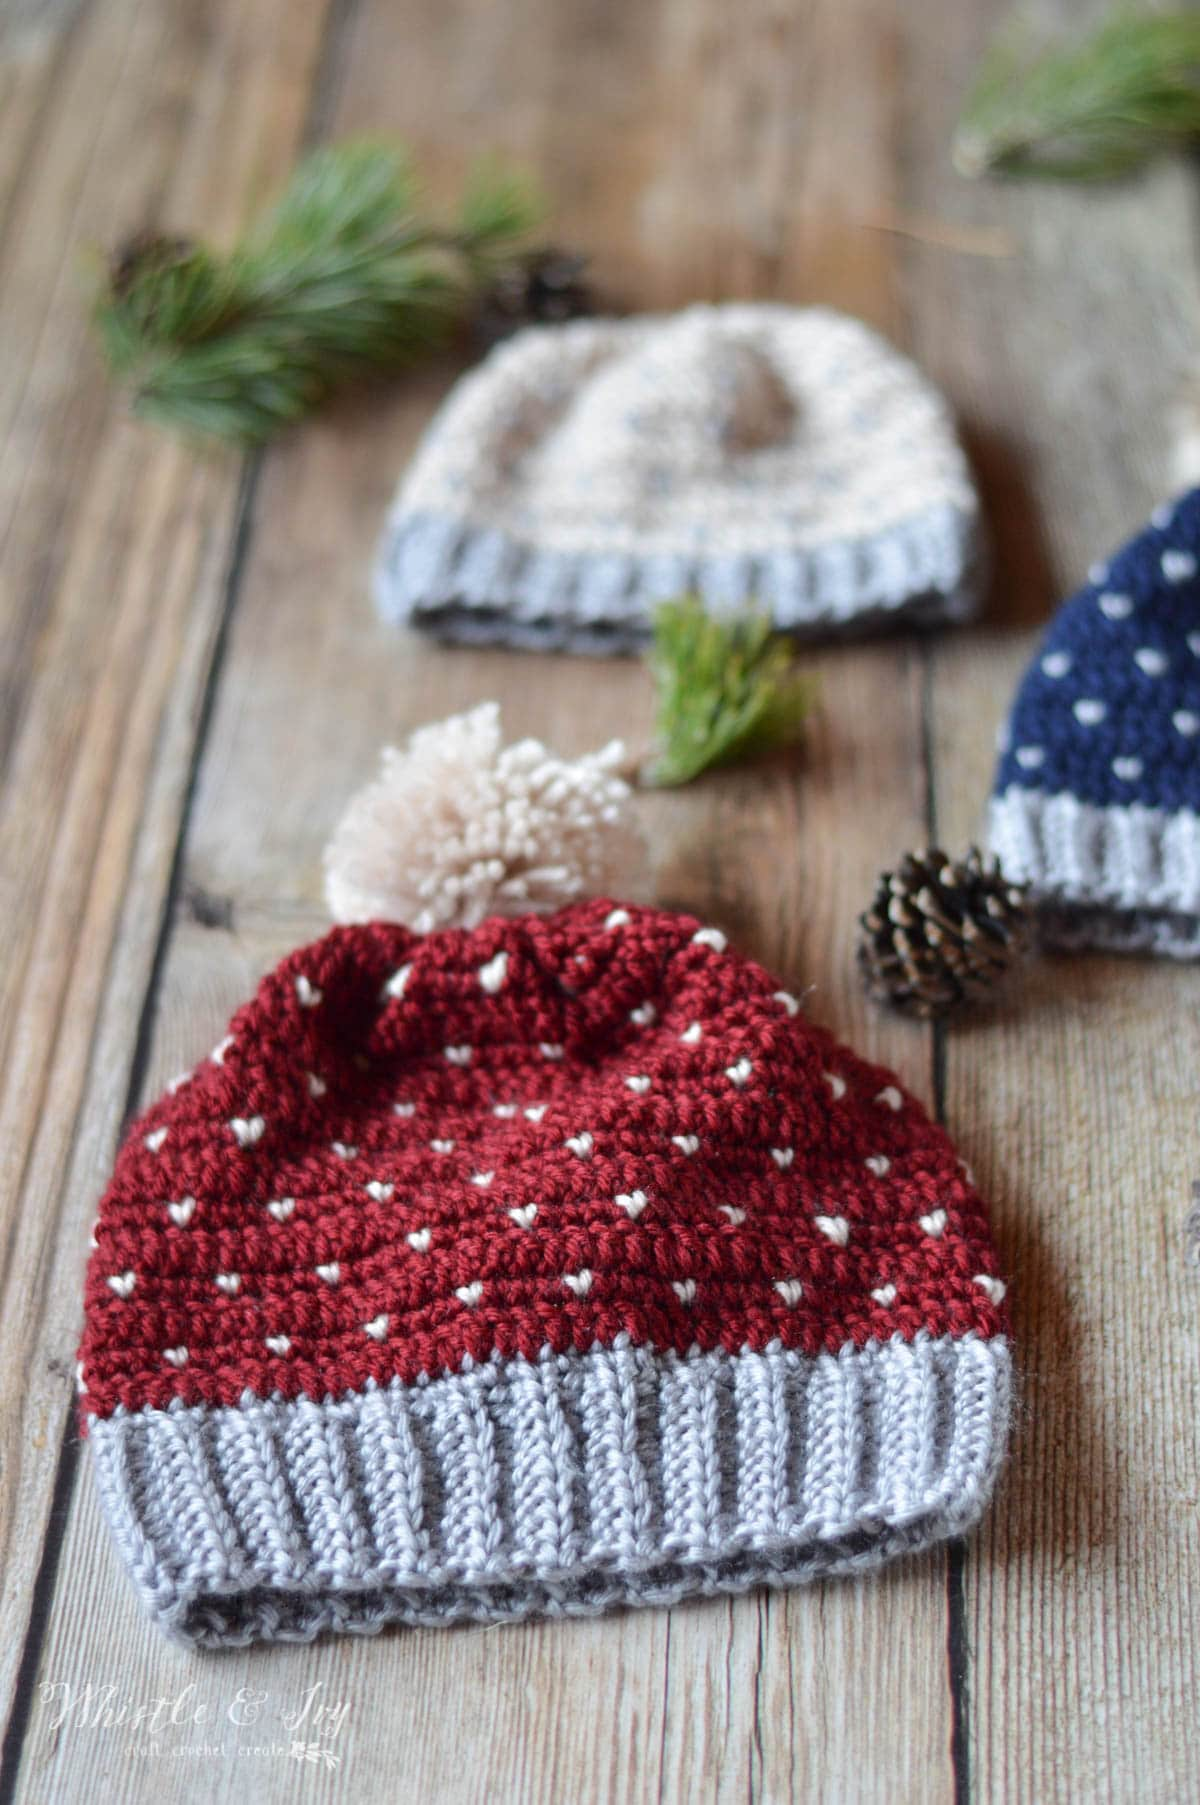 957f82f7663 Crochet Snowfall Hat - Size Baby to Adult - Free Crochet Pattern ...